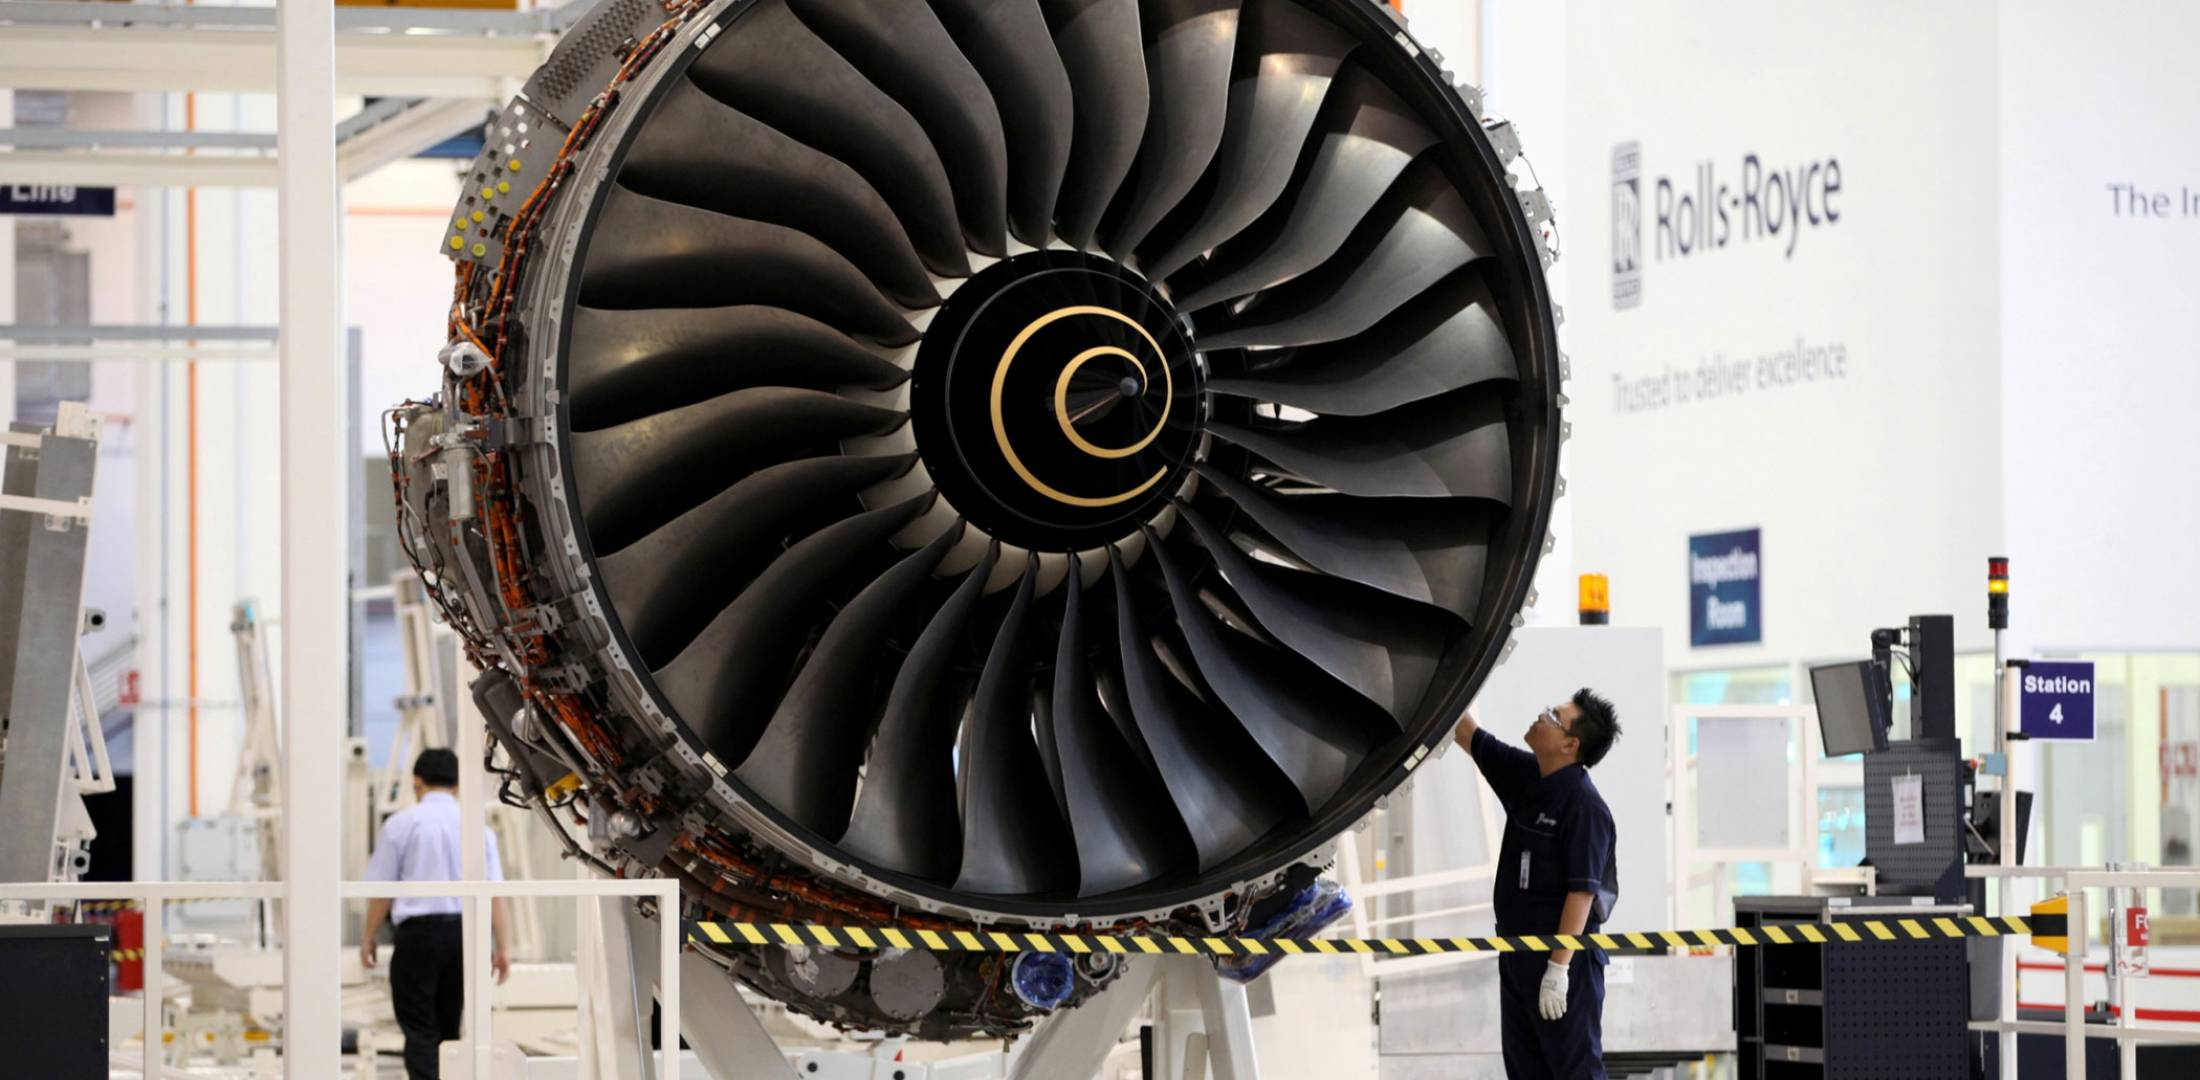 A Trent 900 aero engine nears completion on Rolls-Royce's production line at the Seletar Assembly & Test Unit, Singapore.